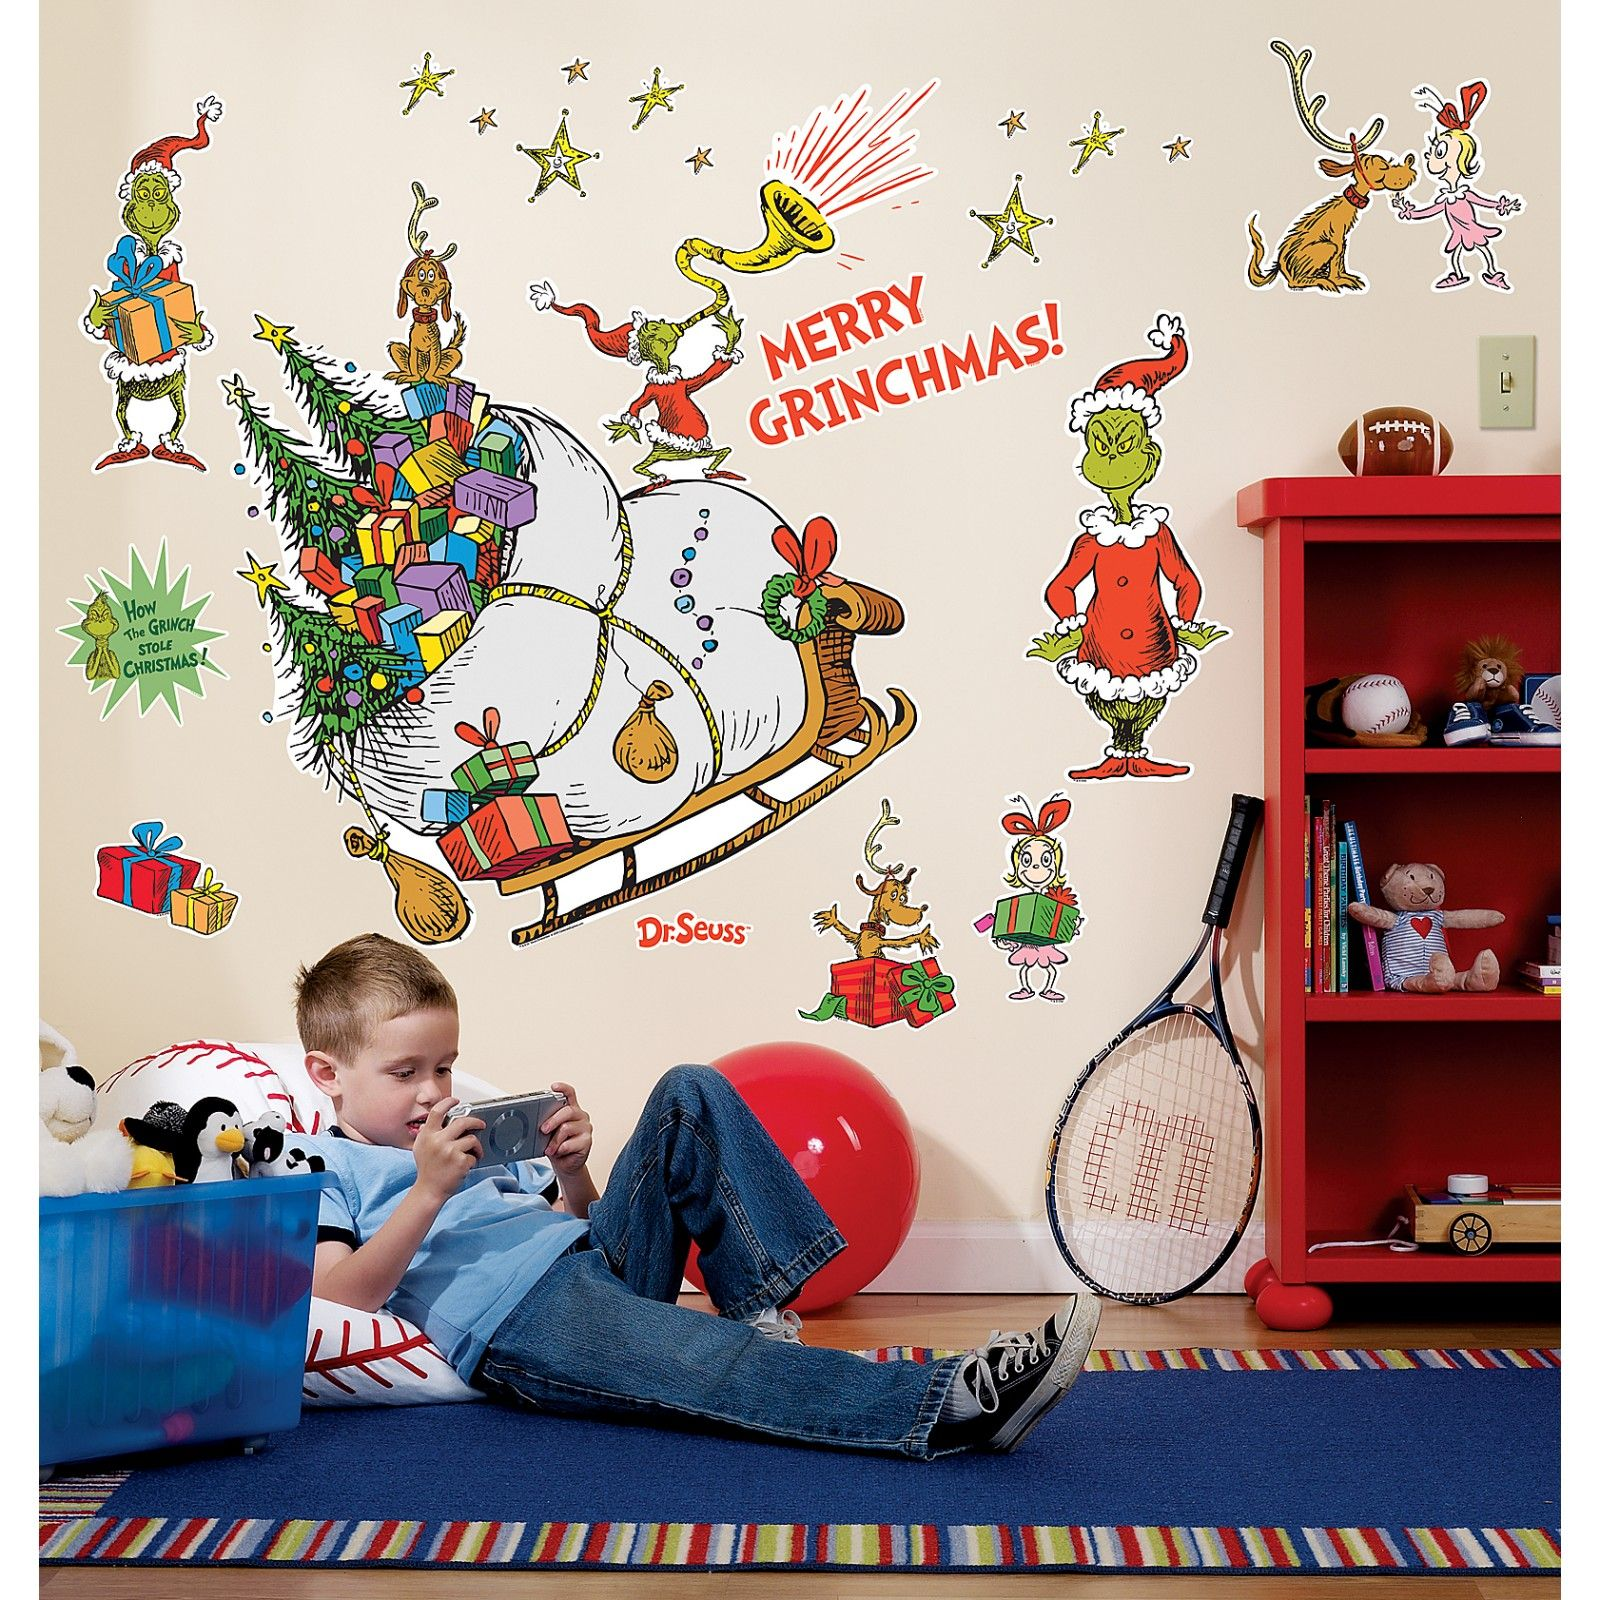 Grinch giant wall decals 68080 its a whoville christmas christmas decor grinch giant wall decals amipublicfo Choice Image